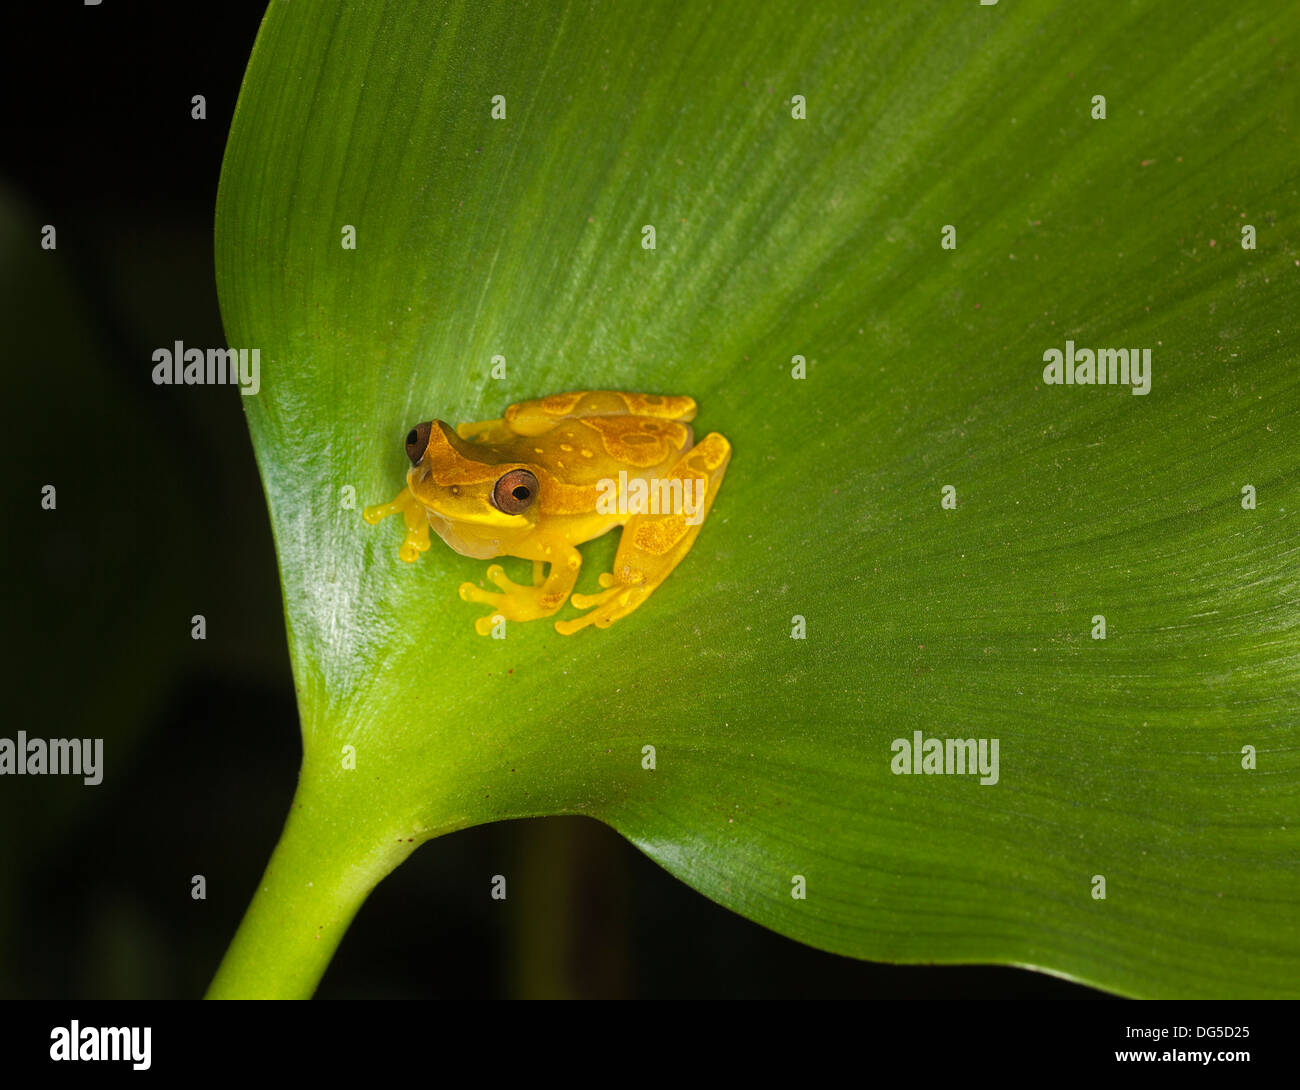 Golden Palm Tree Frog male (Dendropsophus ebraccatus) on pond leaf at night. Also known as Banana Frog, - Stock Image